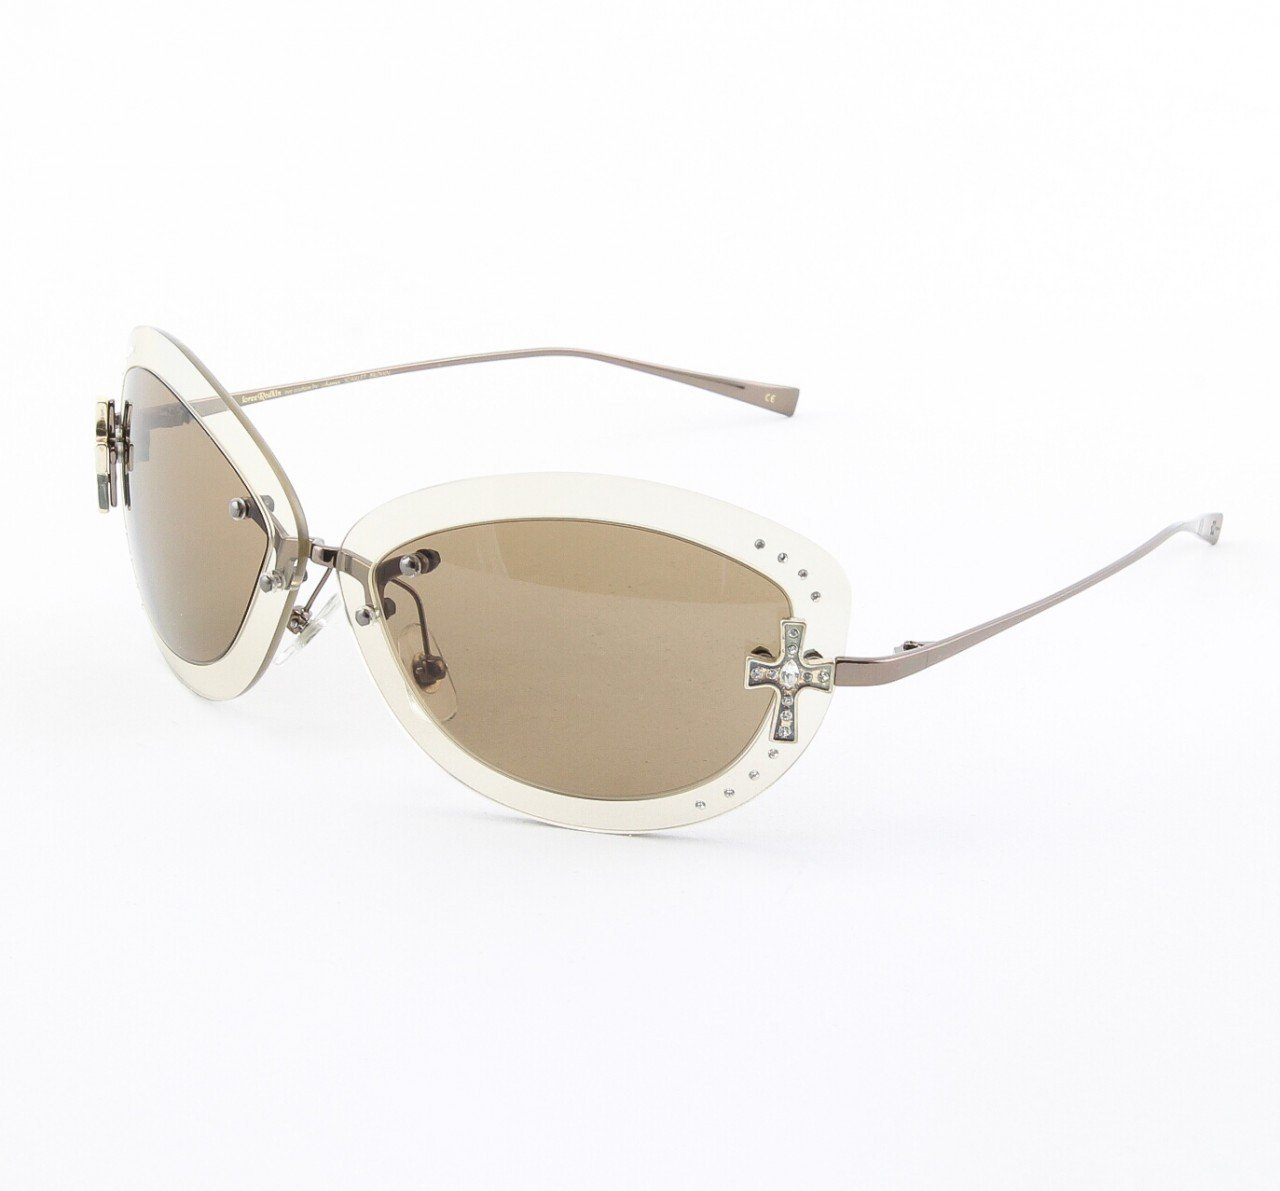 Loree Rodkin Scarlet Sunglasses by Sama Col. Lavender with Brown Lenses and Swarovski Crystals